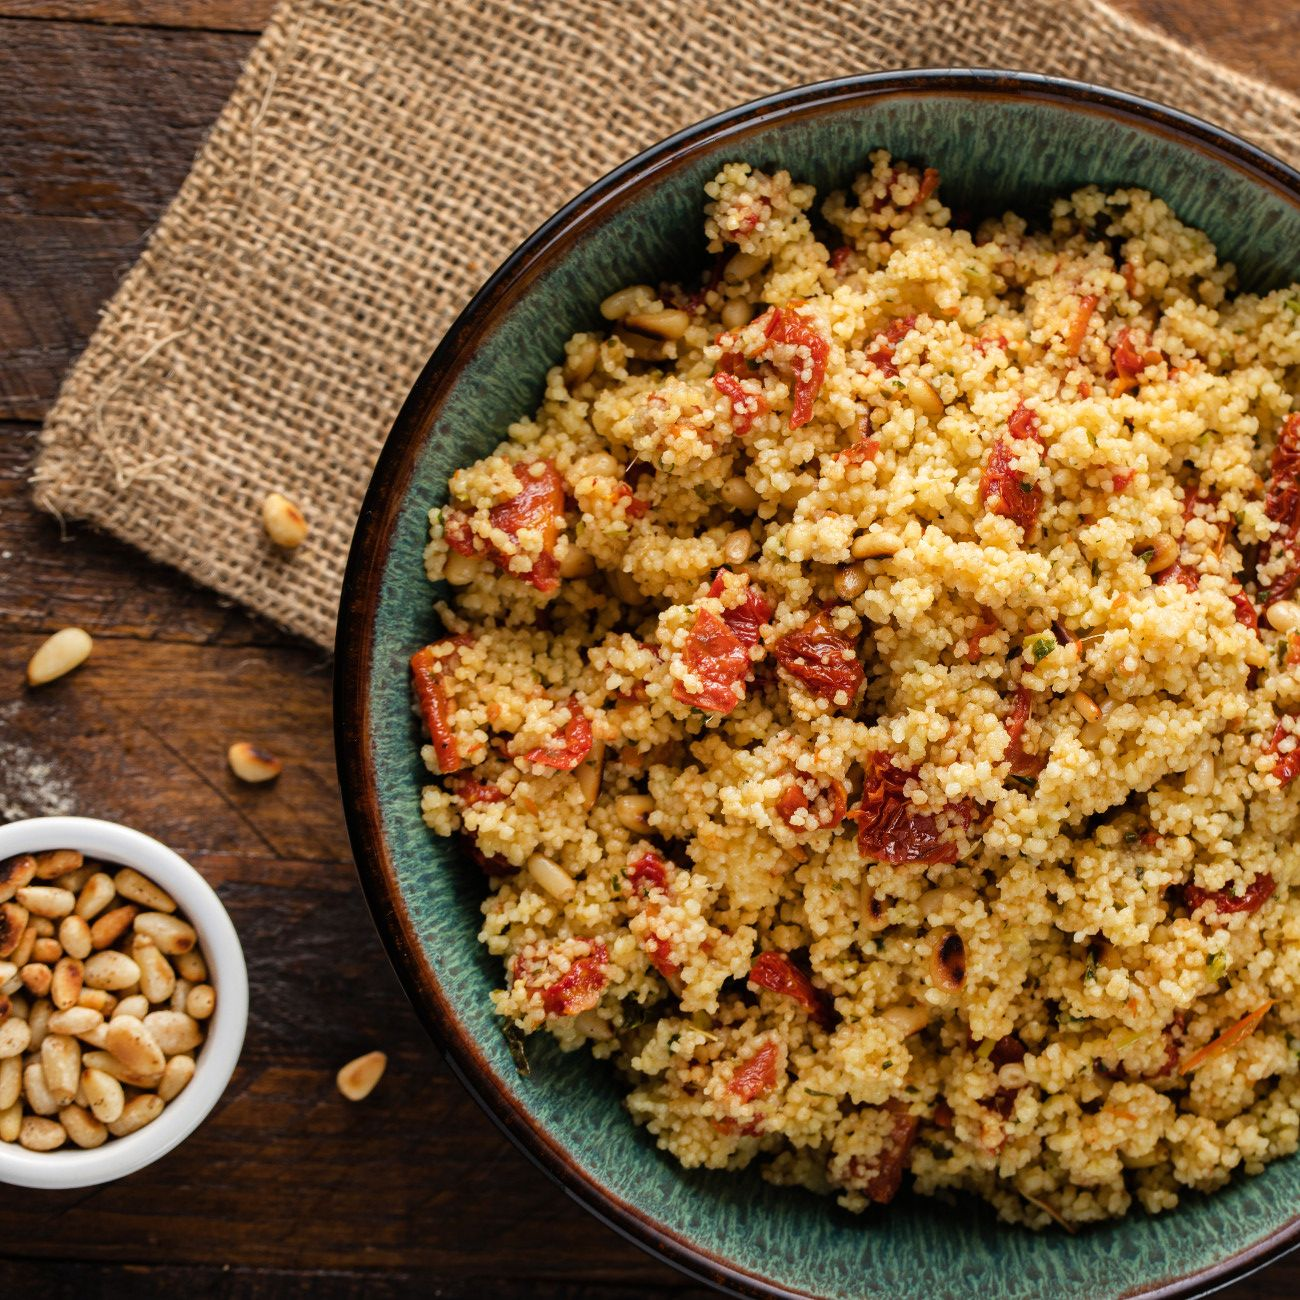 sun_dried_tomato_and_basil_couscous_4496.jpg